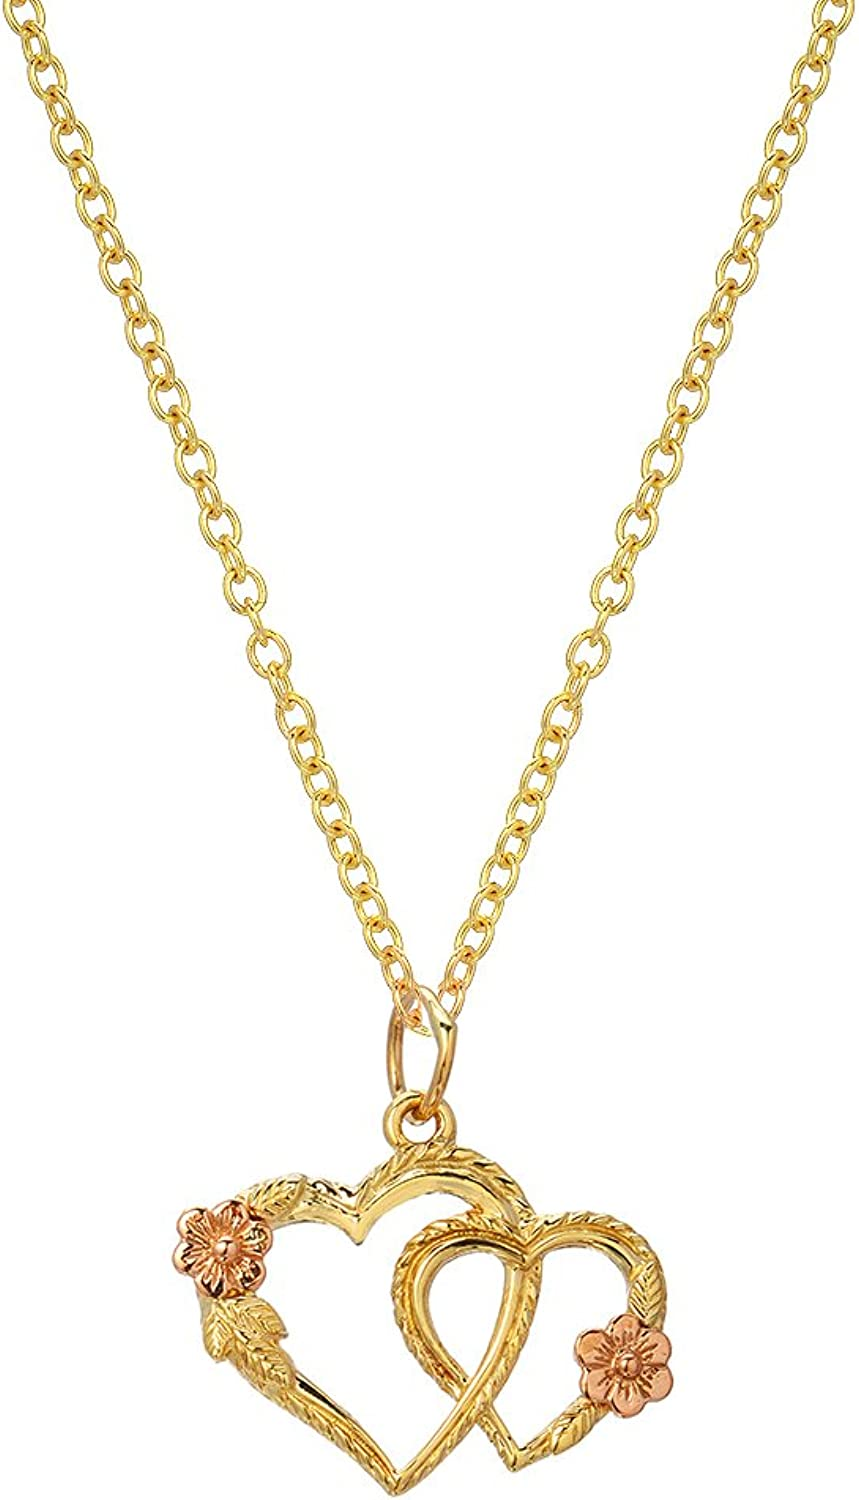 14K Yellow and pink gold Double Heart pink Pendant Necklace, 18